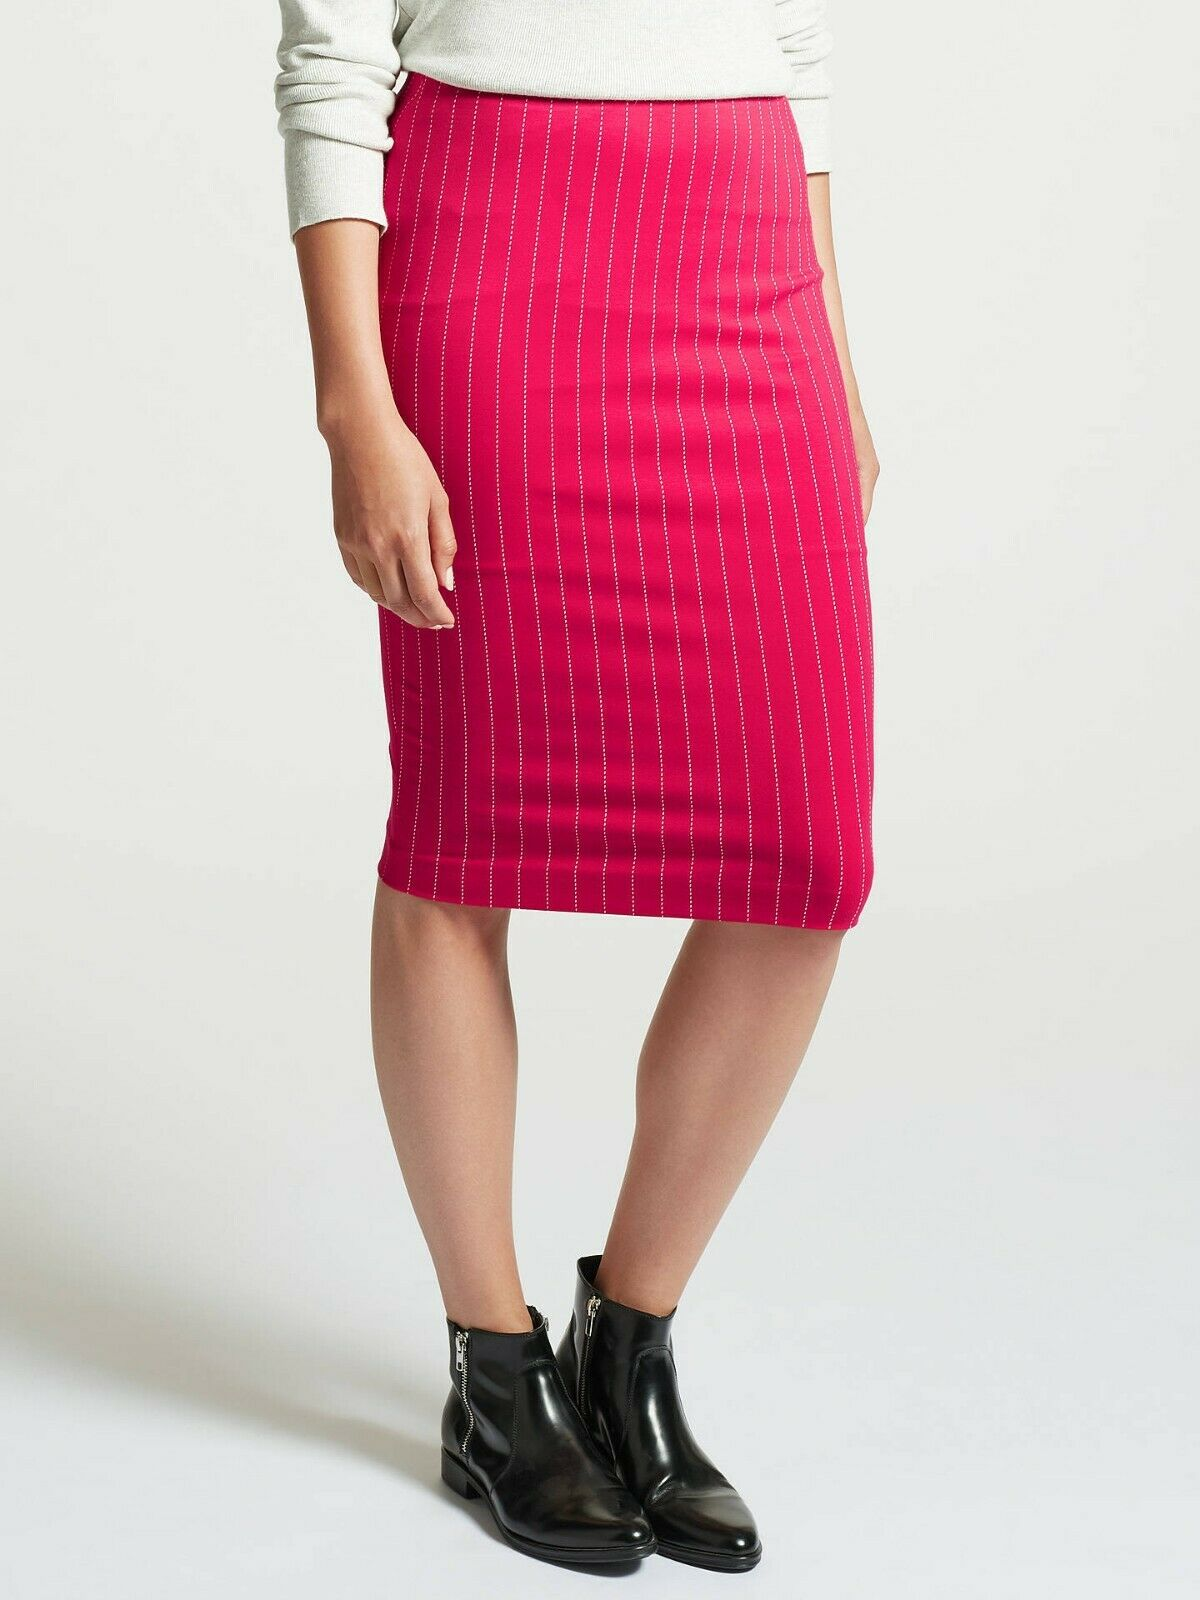 MARC CAIN Stretch Pinstripe Pencil Skirt Pink N4 RRP  US 10